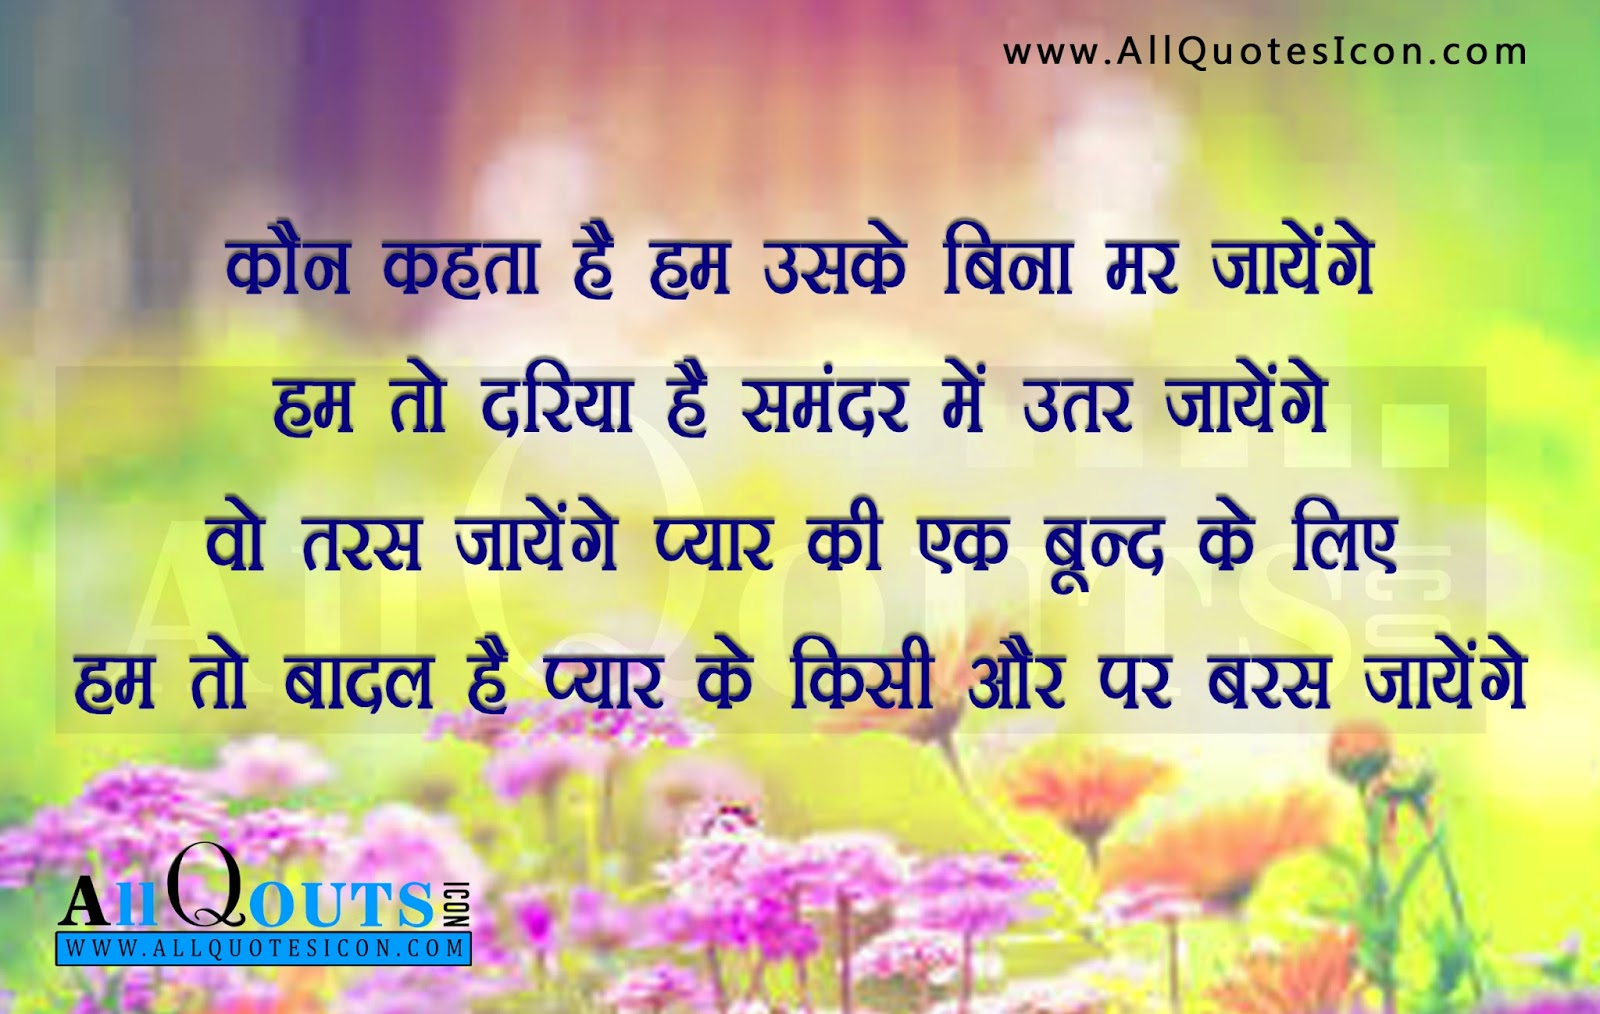 Hindi Quotes and Romantic Shayari HD Wallpapers Best Thoughts and Sayings Romantic Hindi Quotes